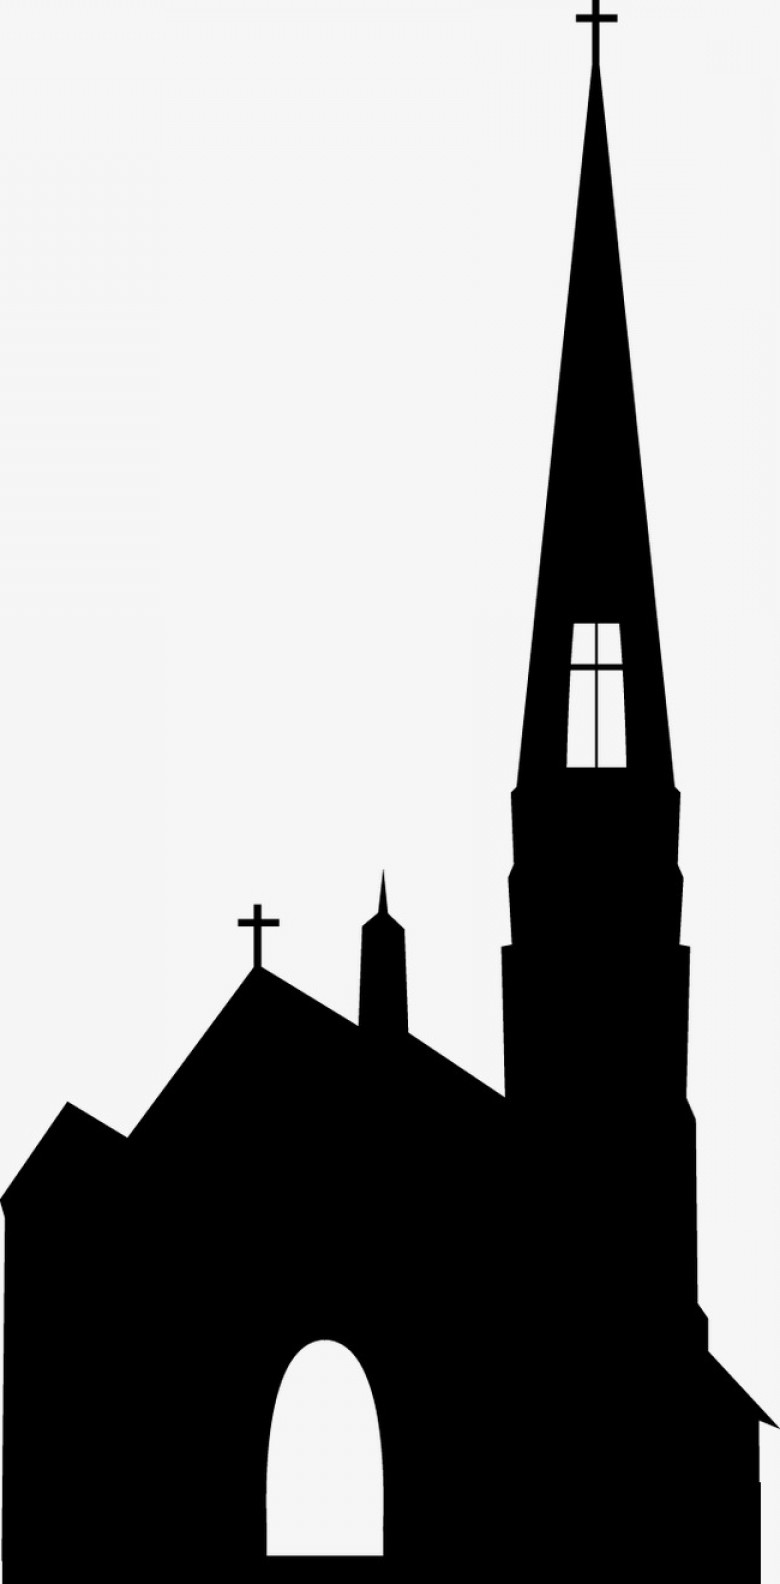 Church Silhouette Vector: Castle Castle Silhouette Castle Castle Church